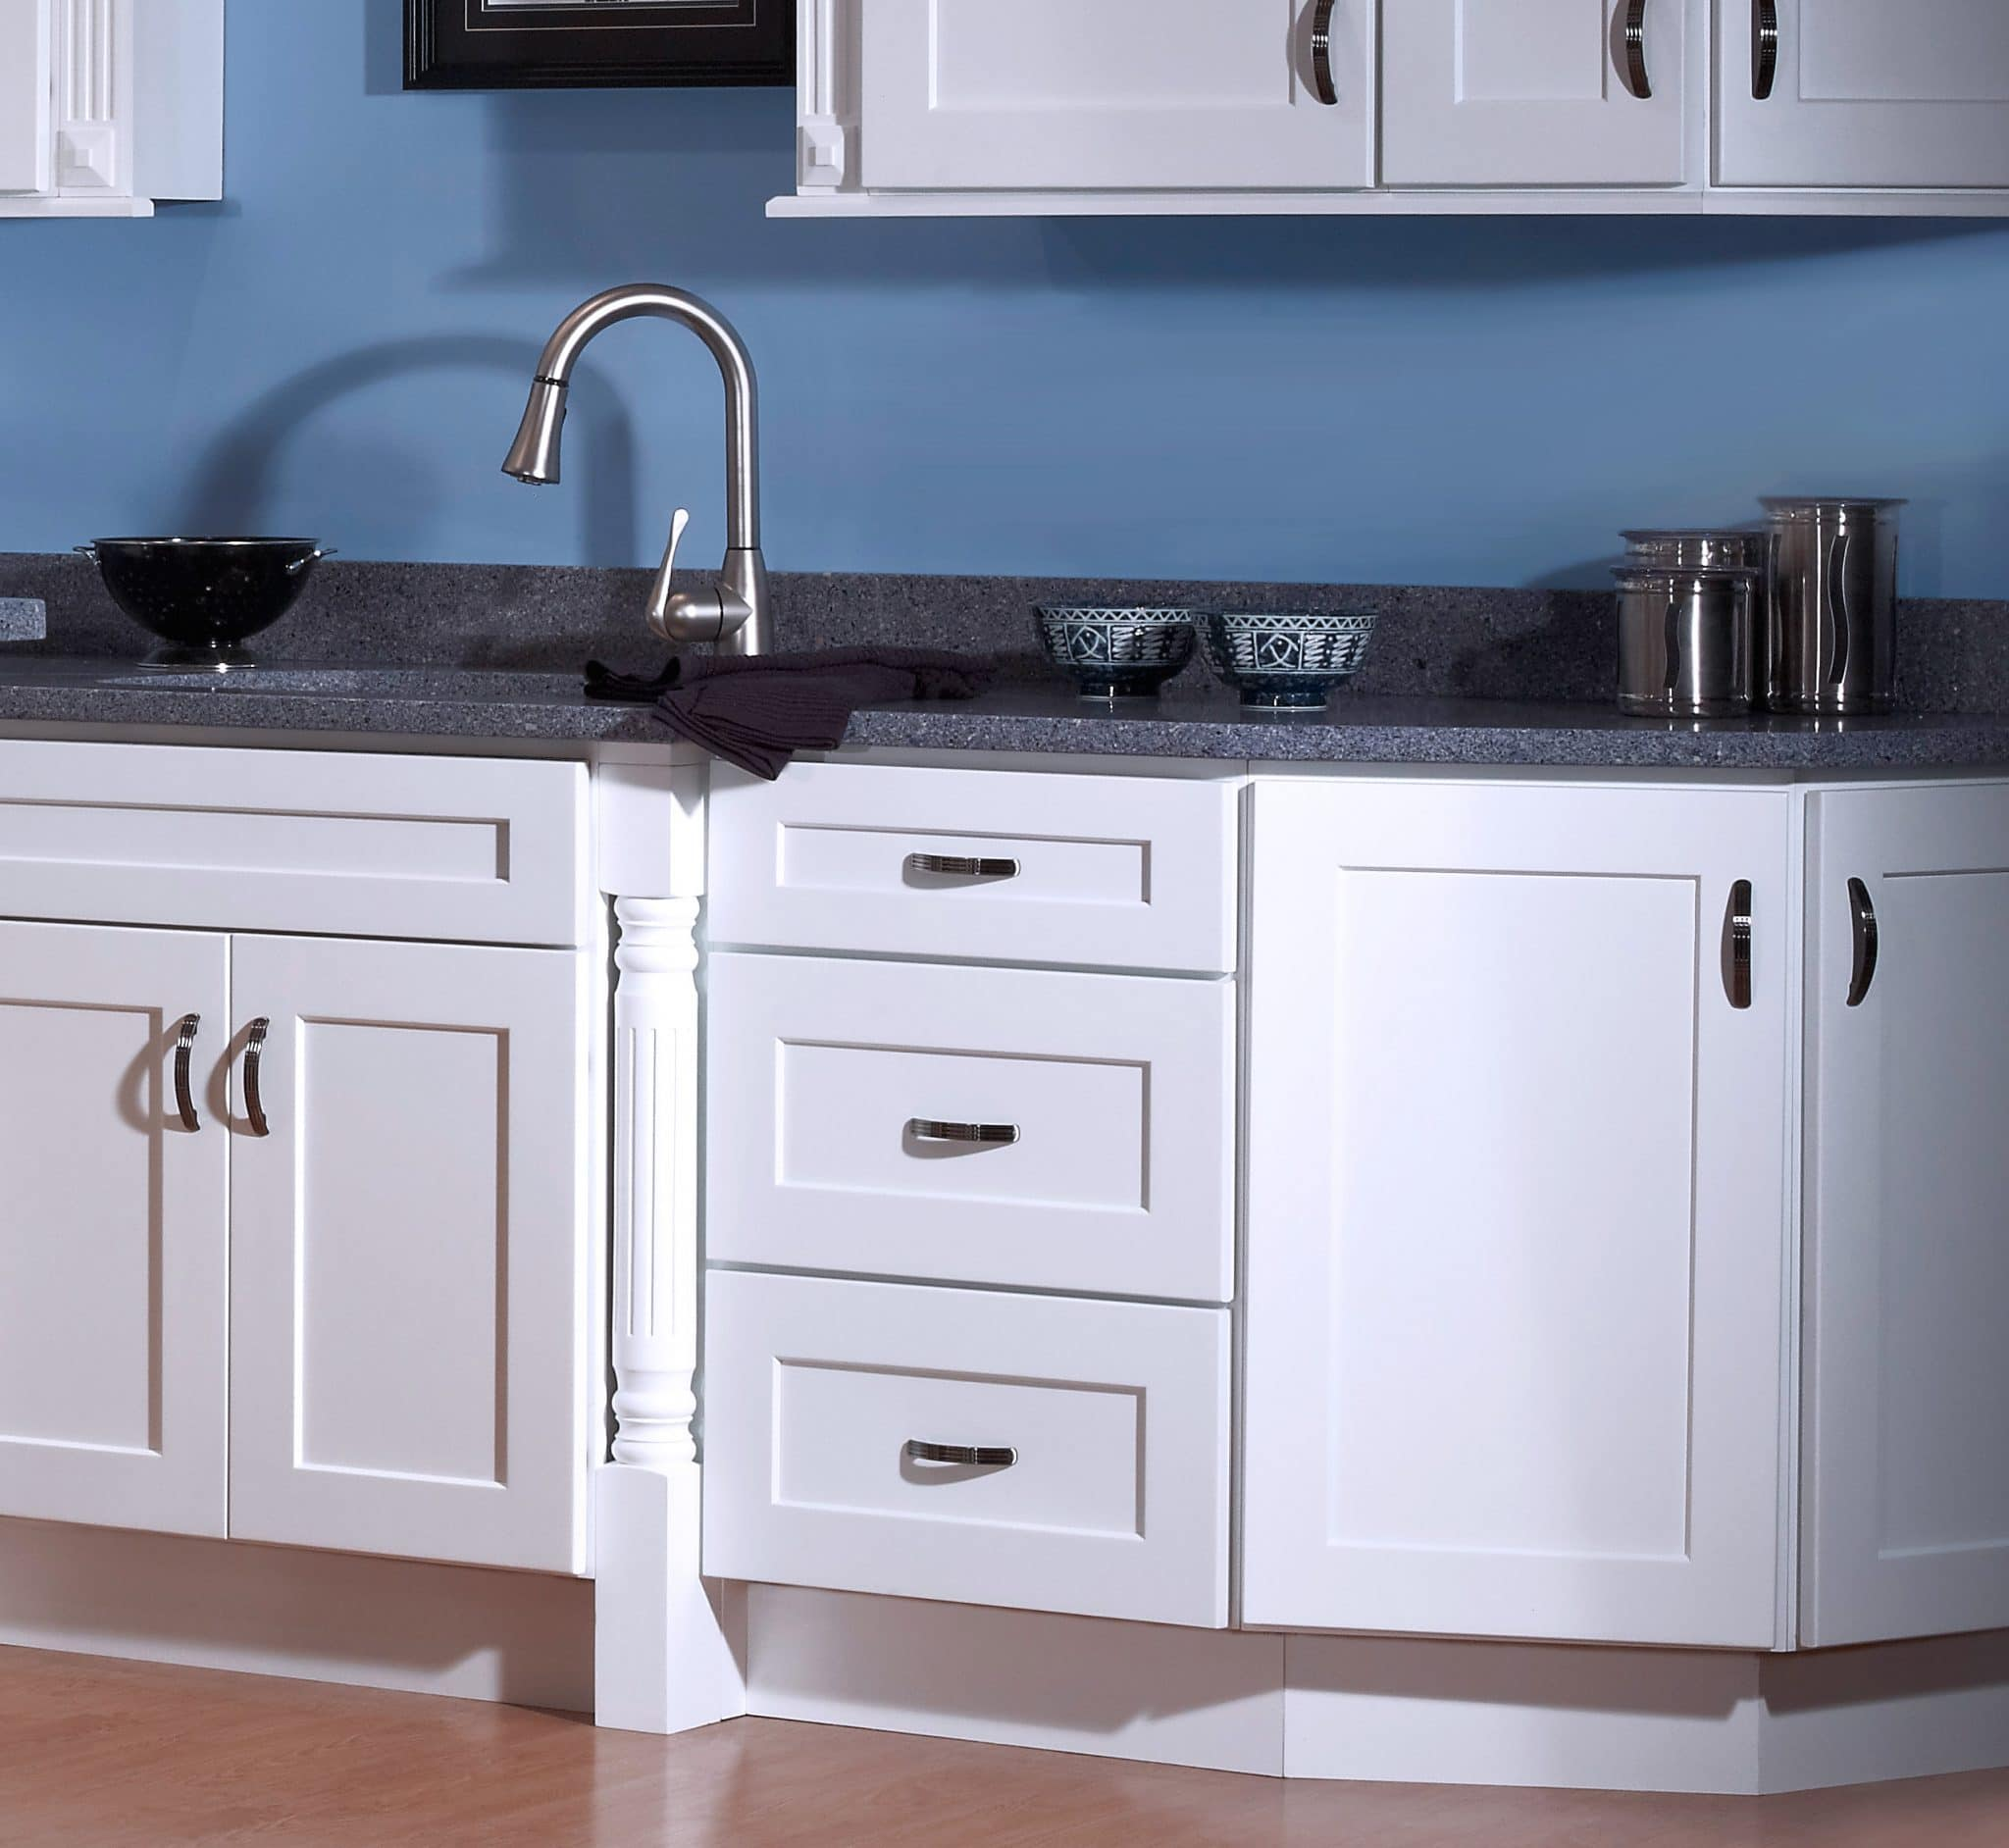 Kitchen Cabinets Shaker: What Is A Shaker Style Kitchen Cabinet?